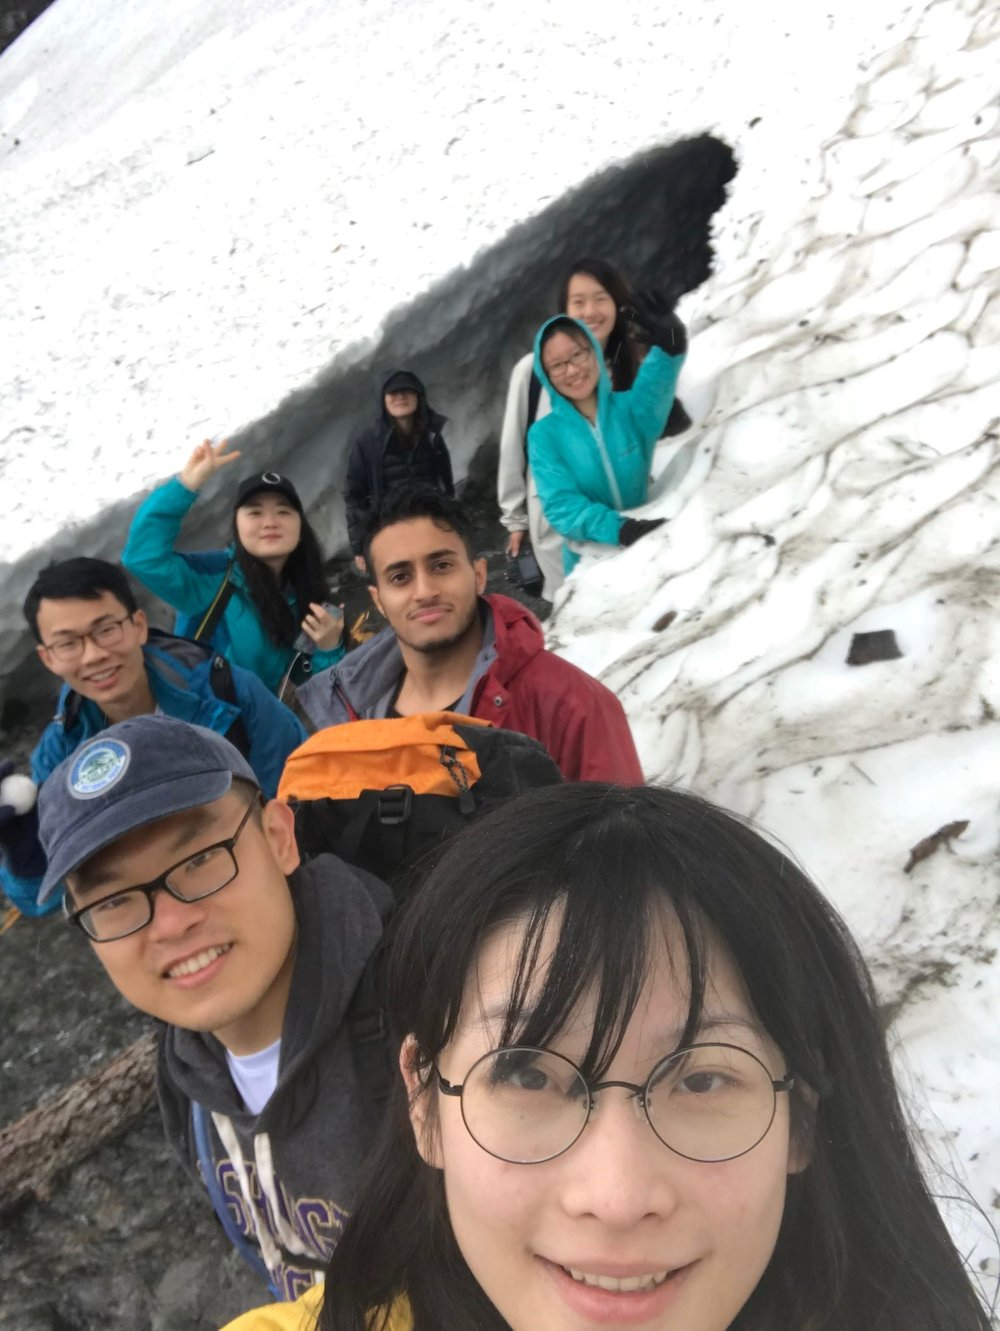 Group selfie at Big Four Ice Caves